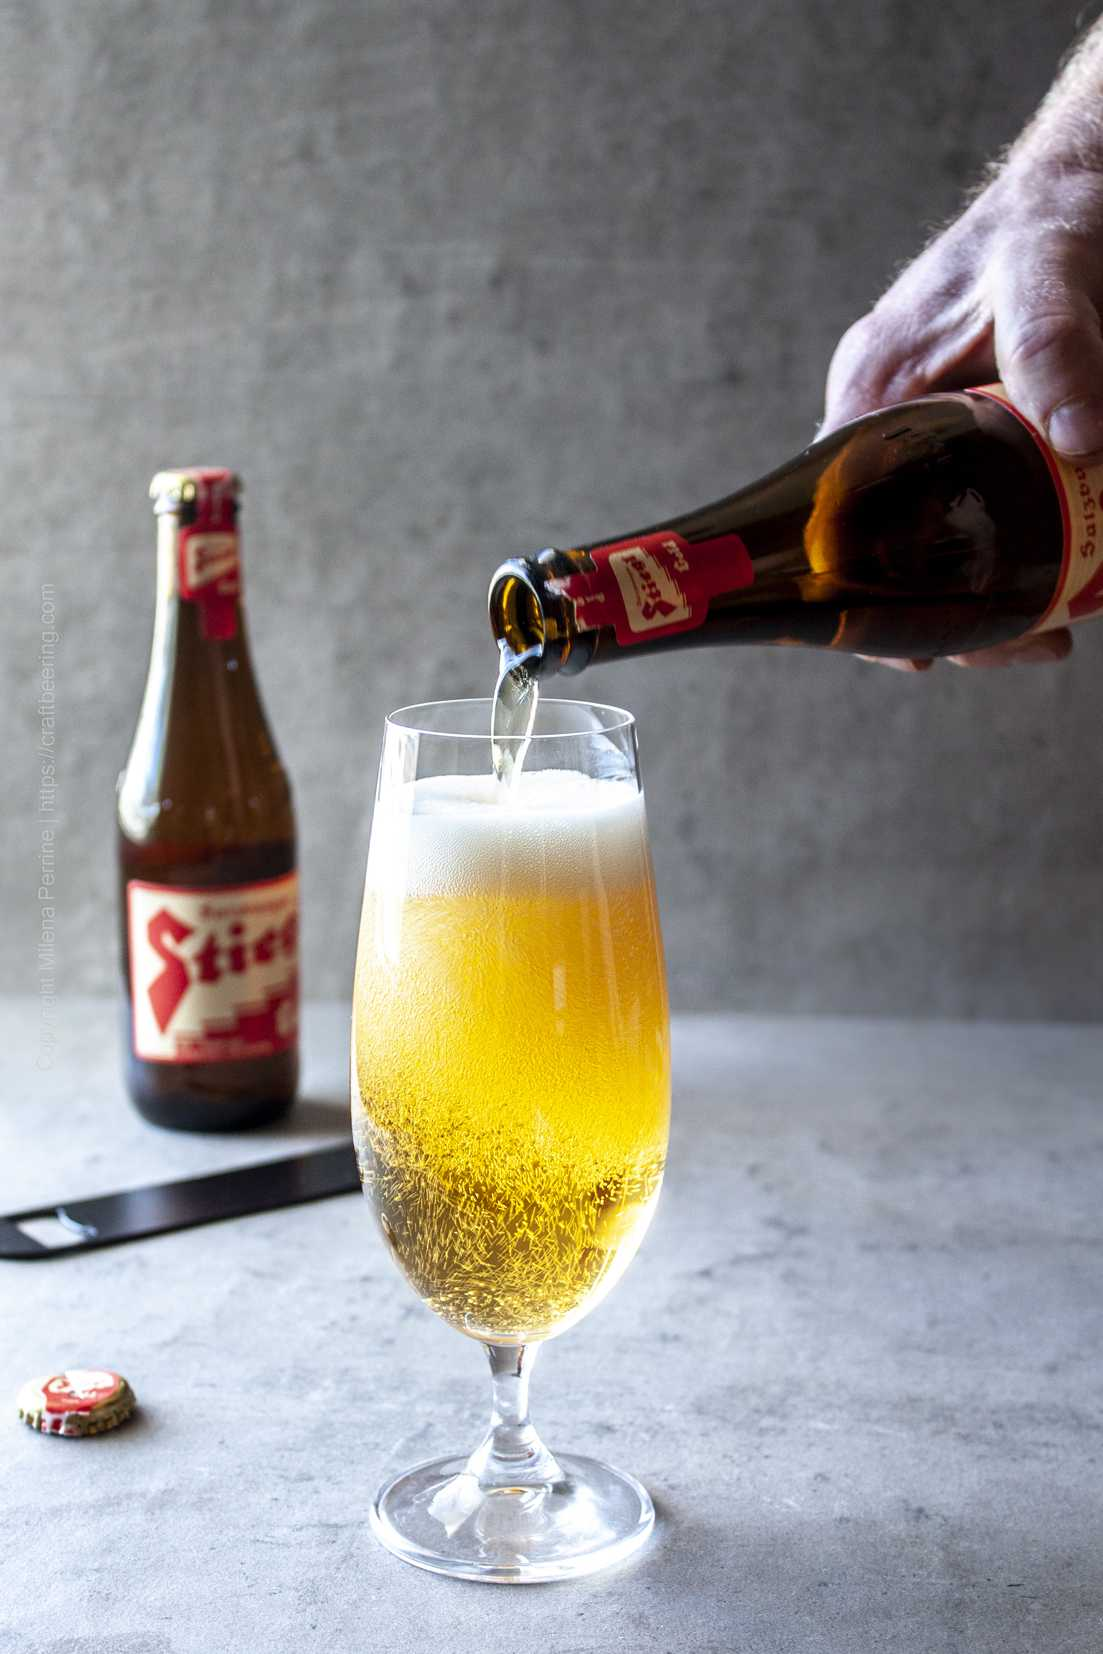 Austrian lager, Stiegl, from the international beer club.